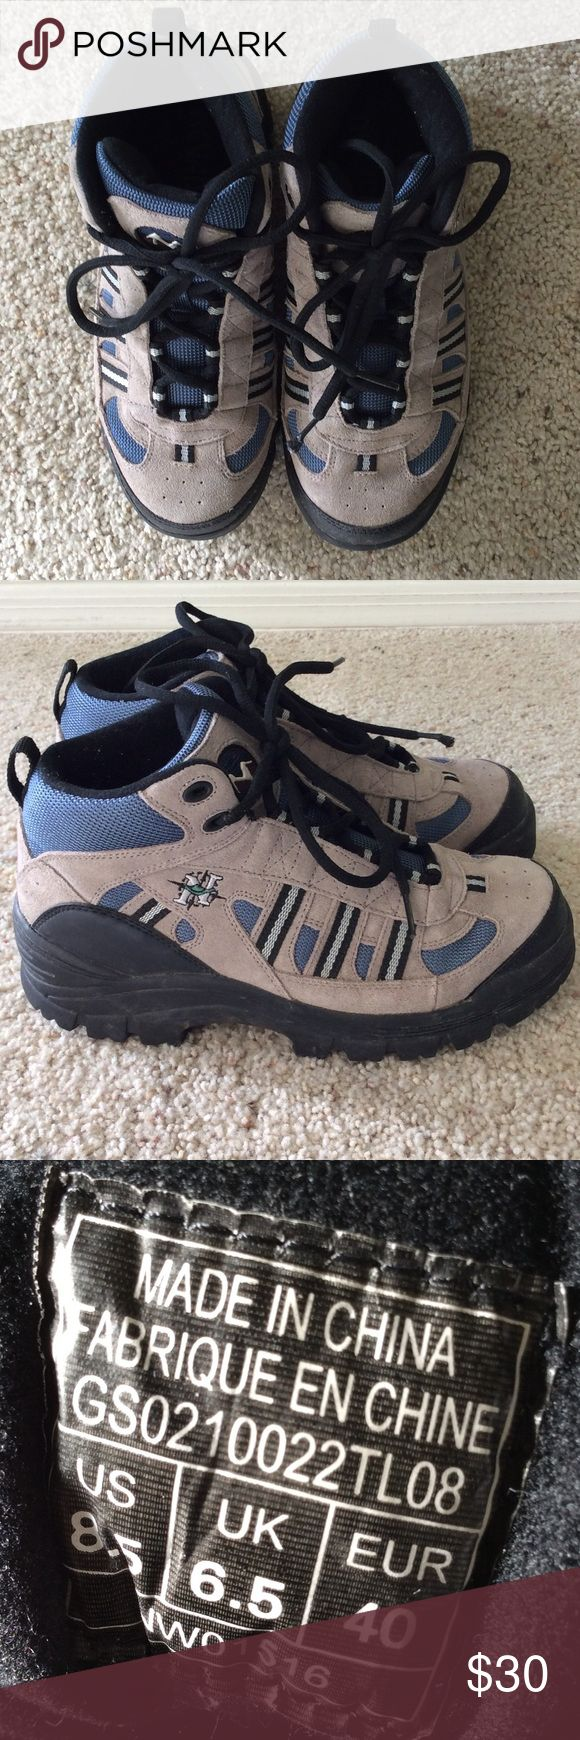 Nevados hiking boots. Size 8.5. Excellent almost new condition. Perfect for snow or hiking! Fits a size 7.5-8 with thick socks for these cold winter months! Nevados Shoes Winter & Rain Boots